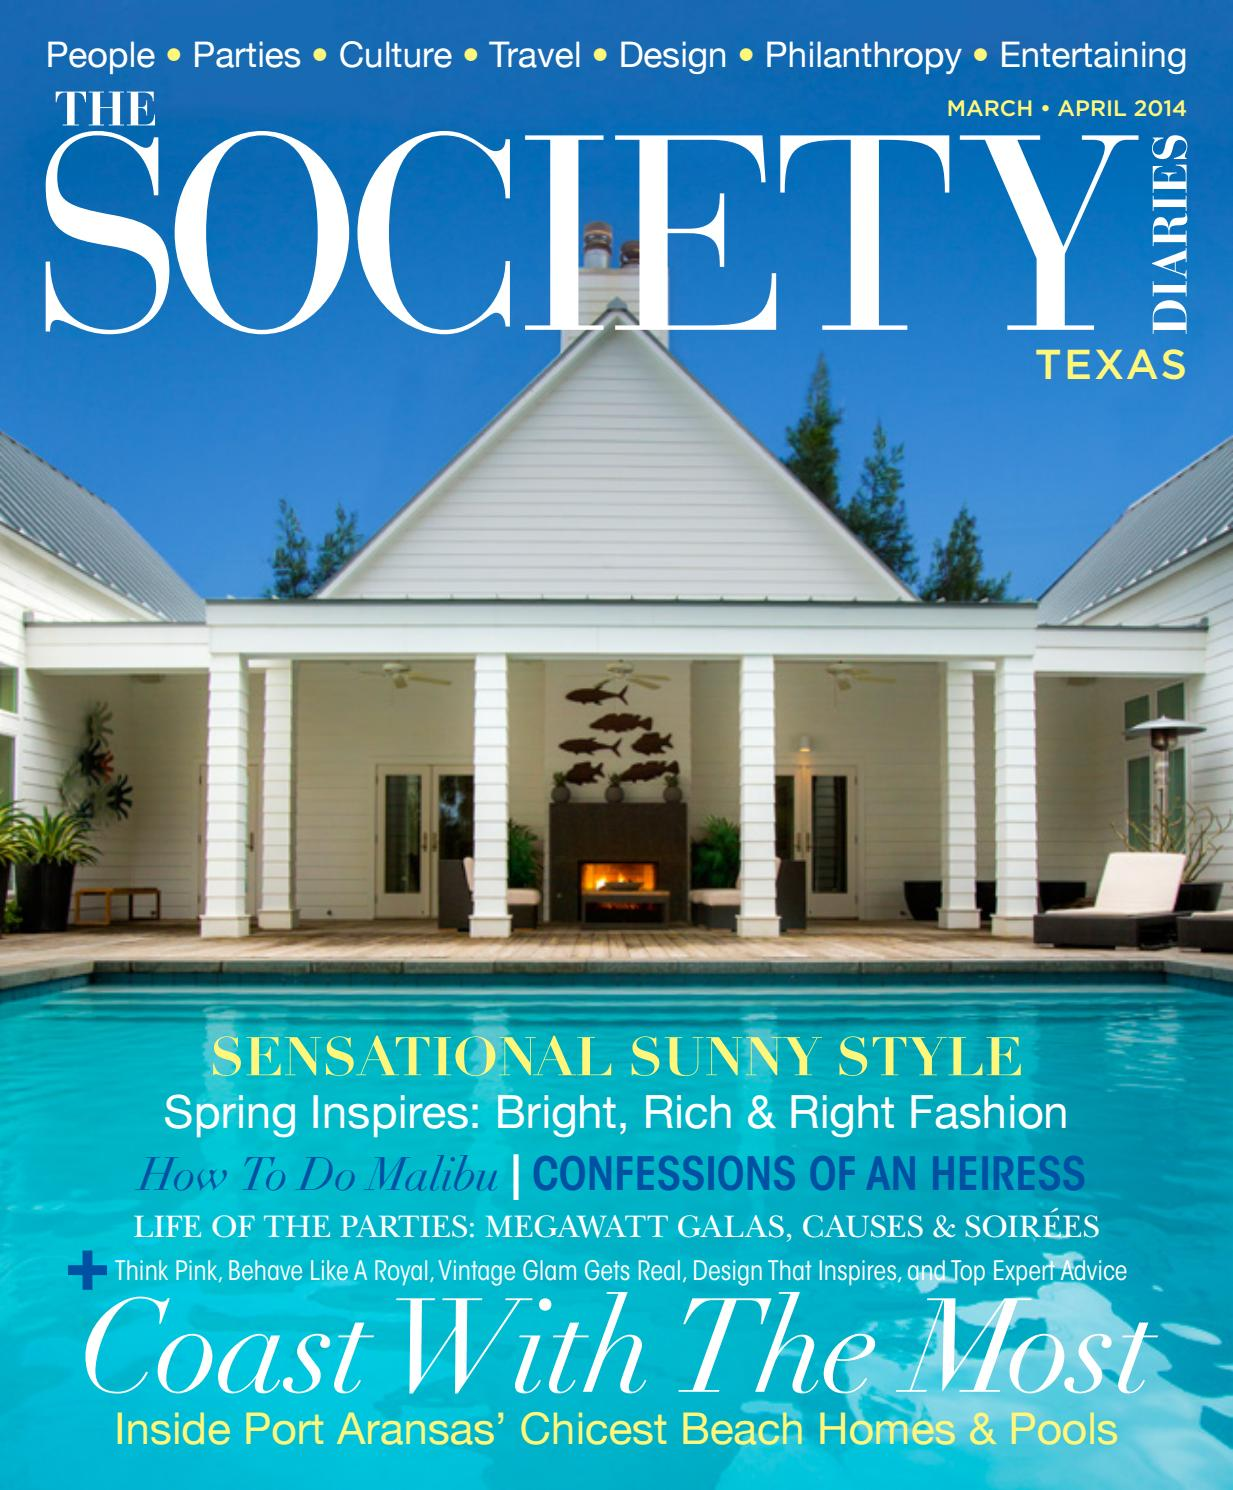 The Society Diaries | March-April 2014 by The Society Diaries - issuu